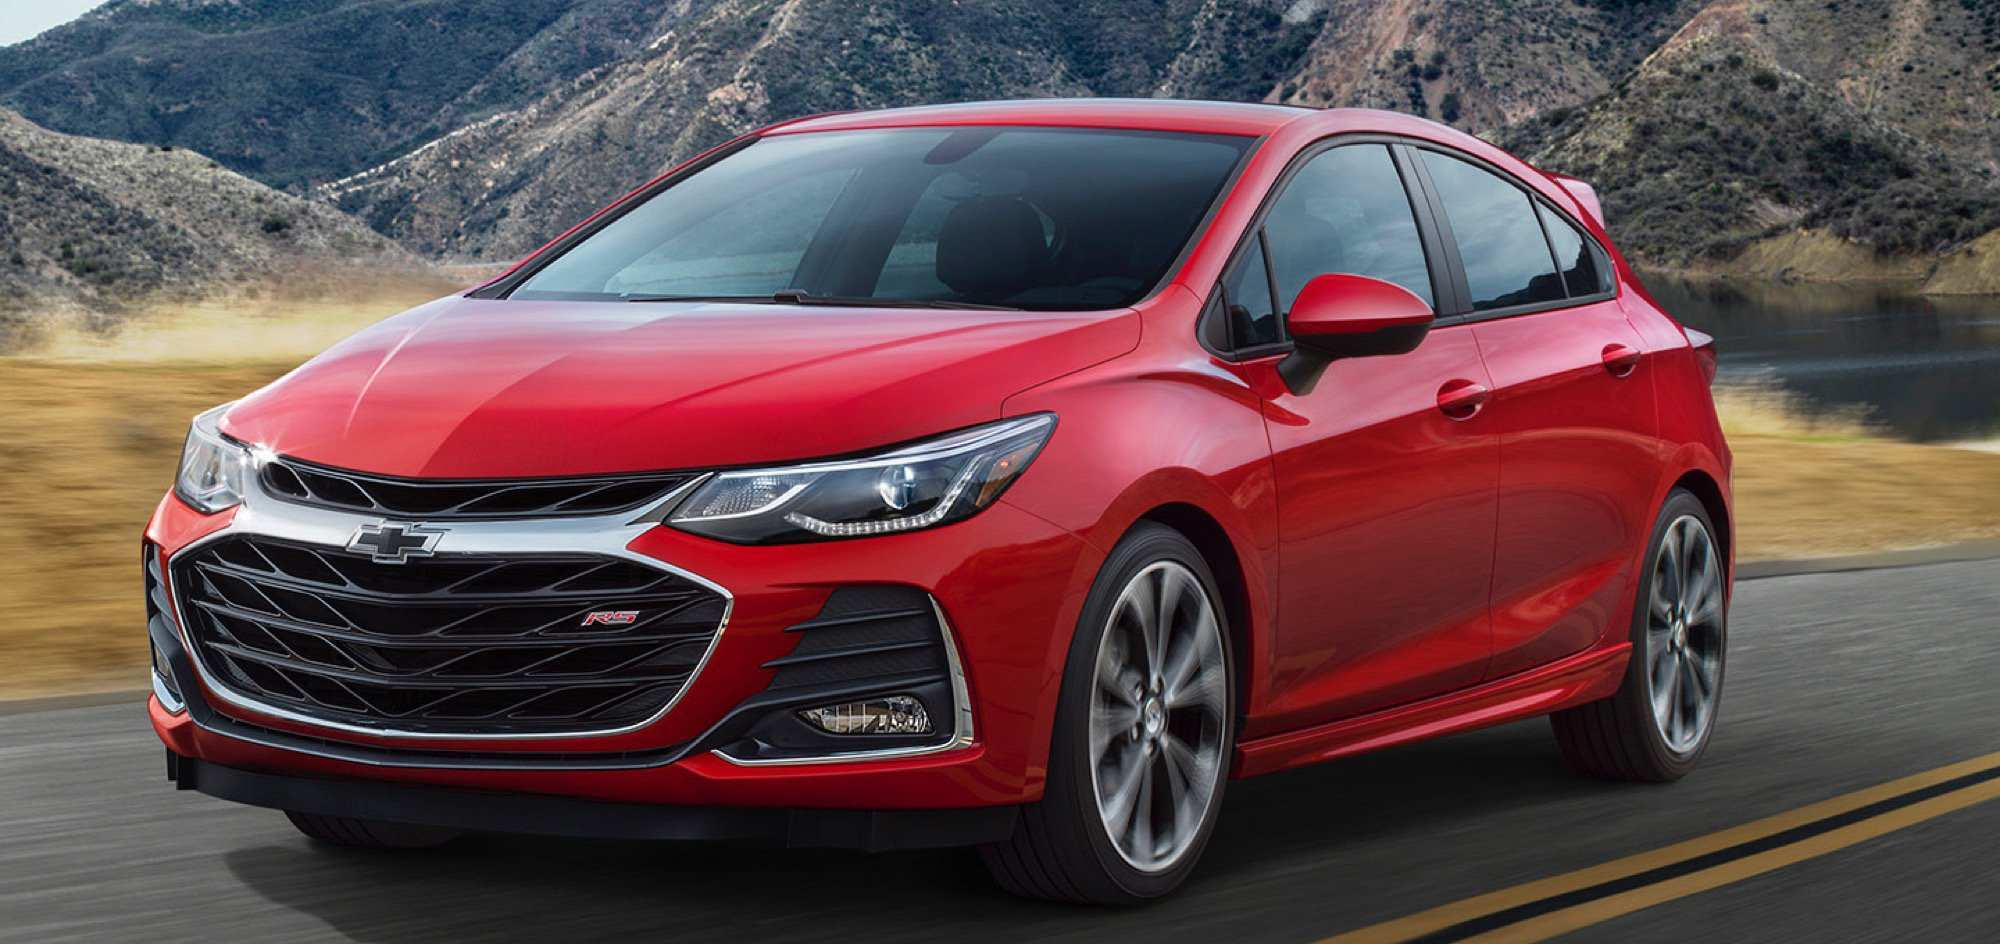 42 The 2020 Chevrolet Cruze Price Design And Review